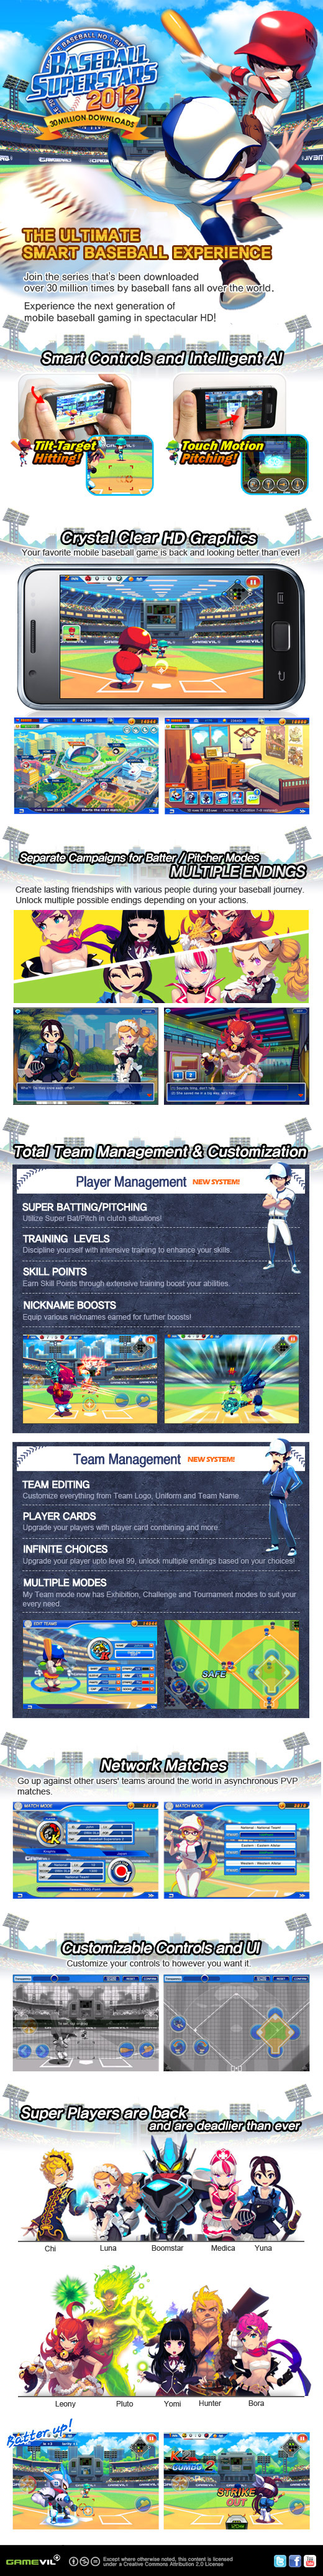 [GAMEVIL] Baseball Superstars 2012 is now Live on Android ...